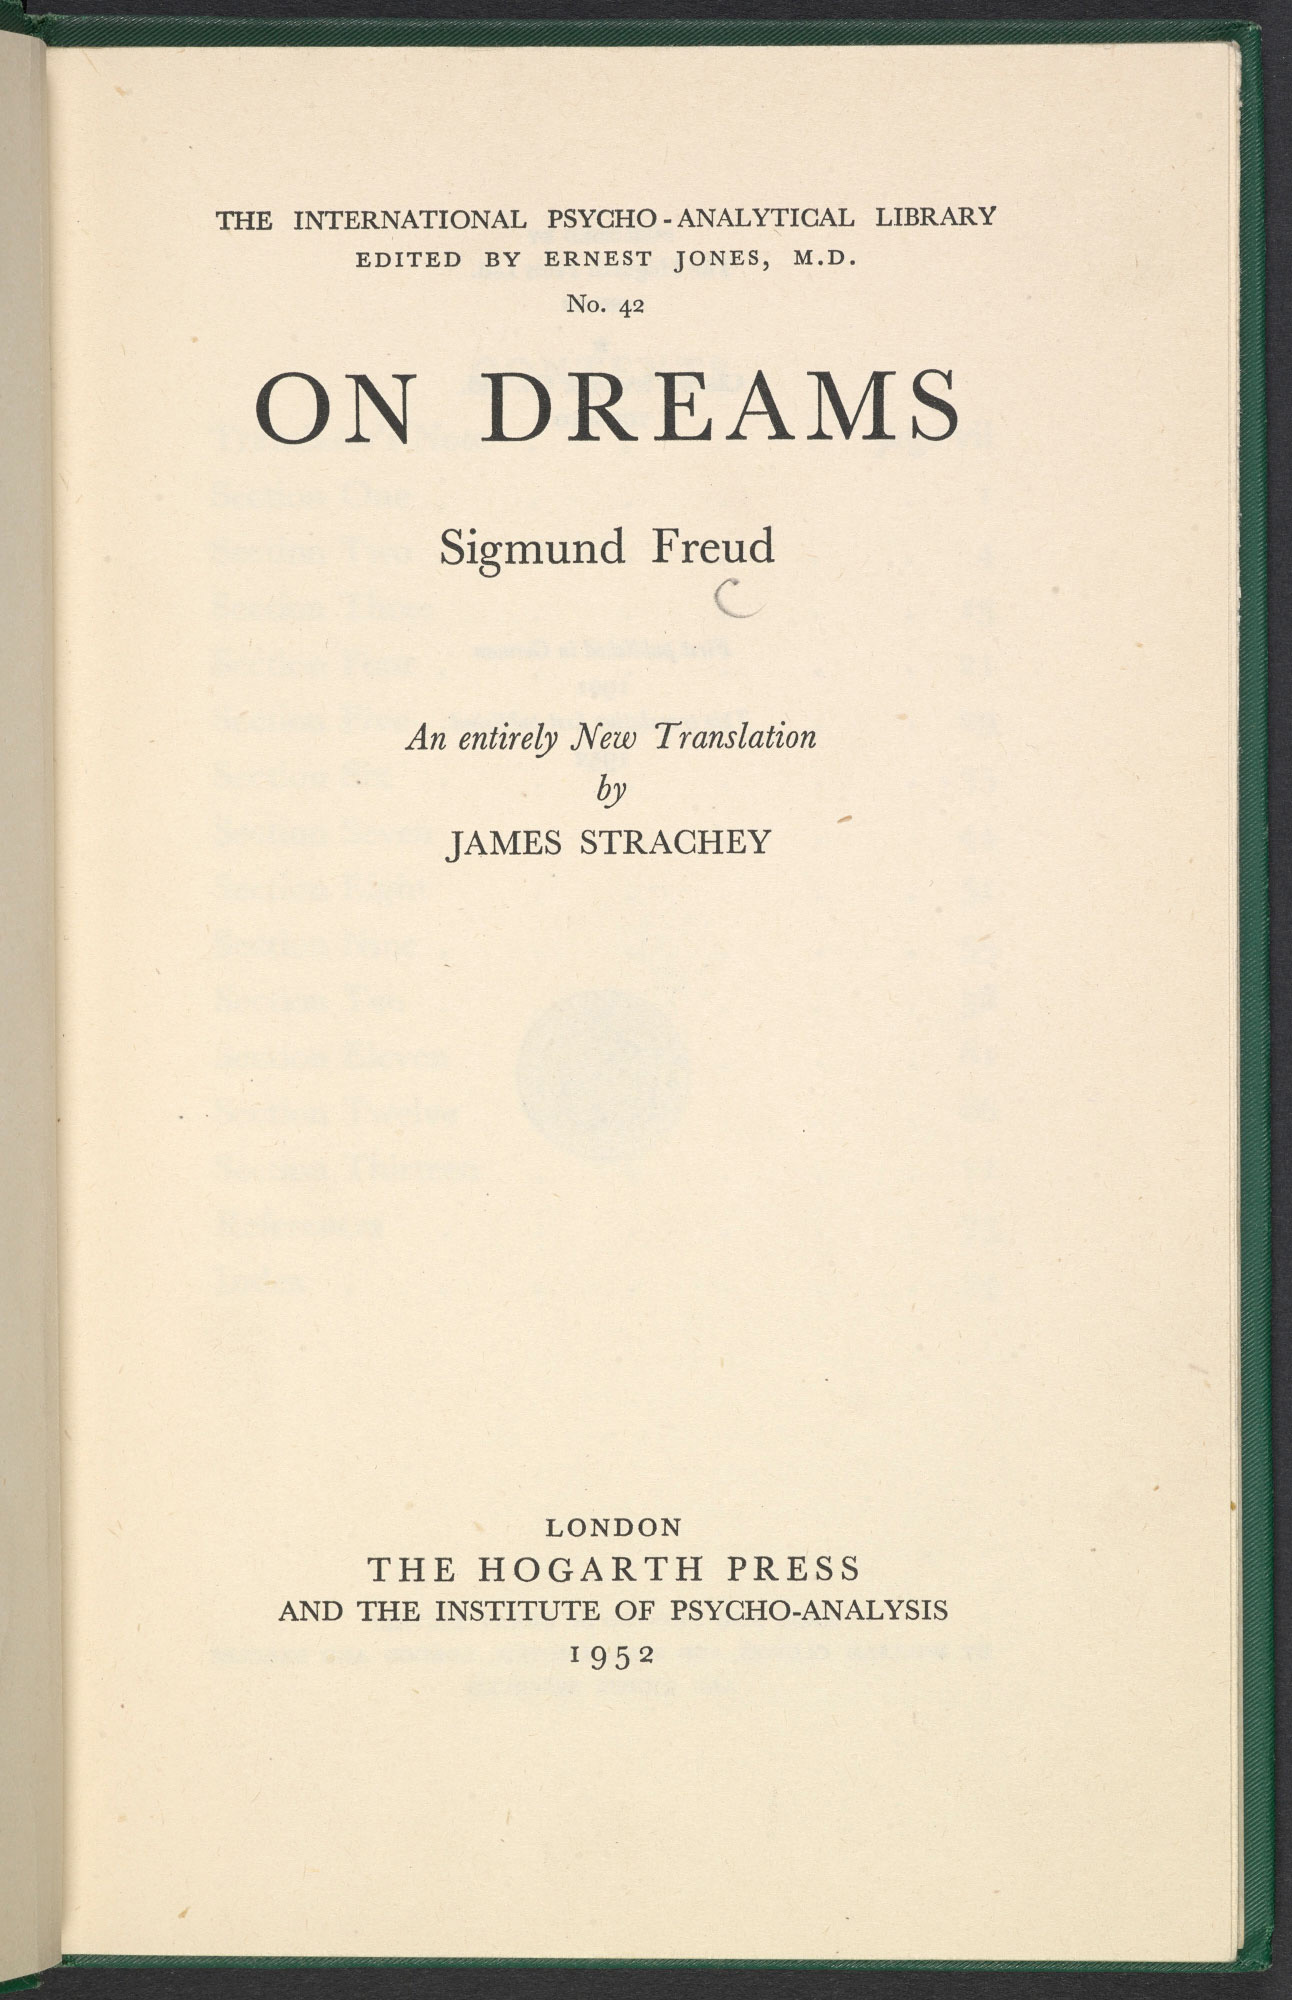 On Dreams by Freud